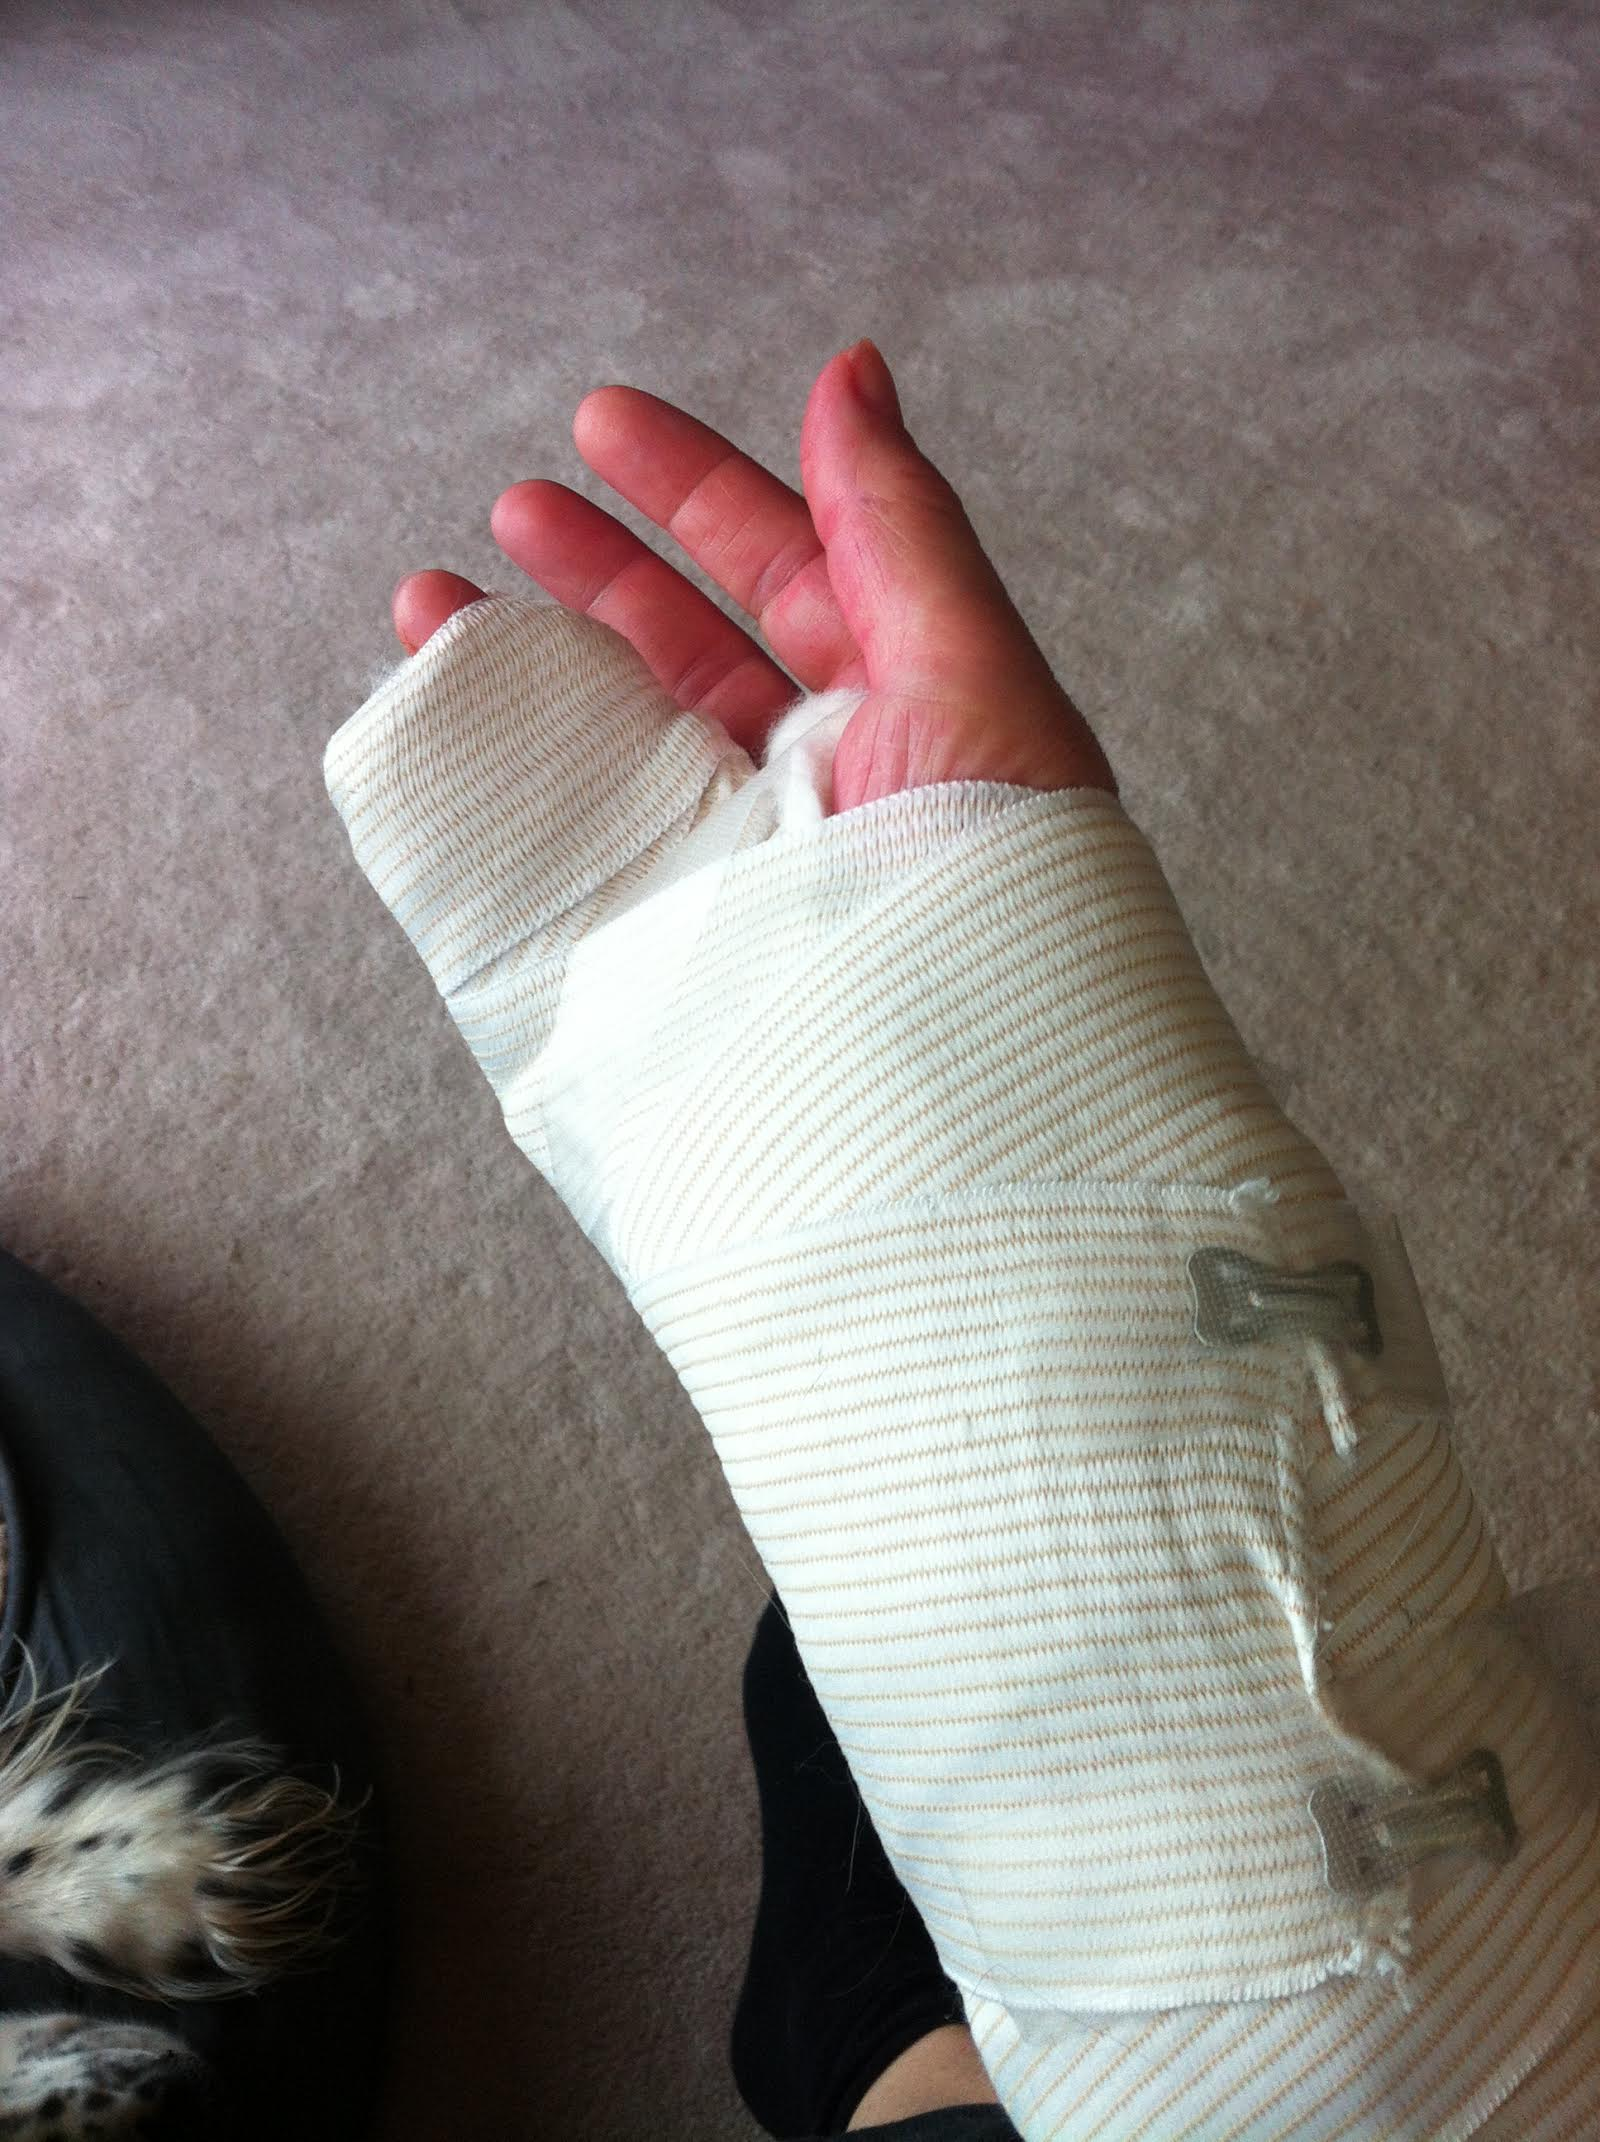 My hand after surgery. Worse.